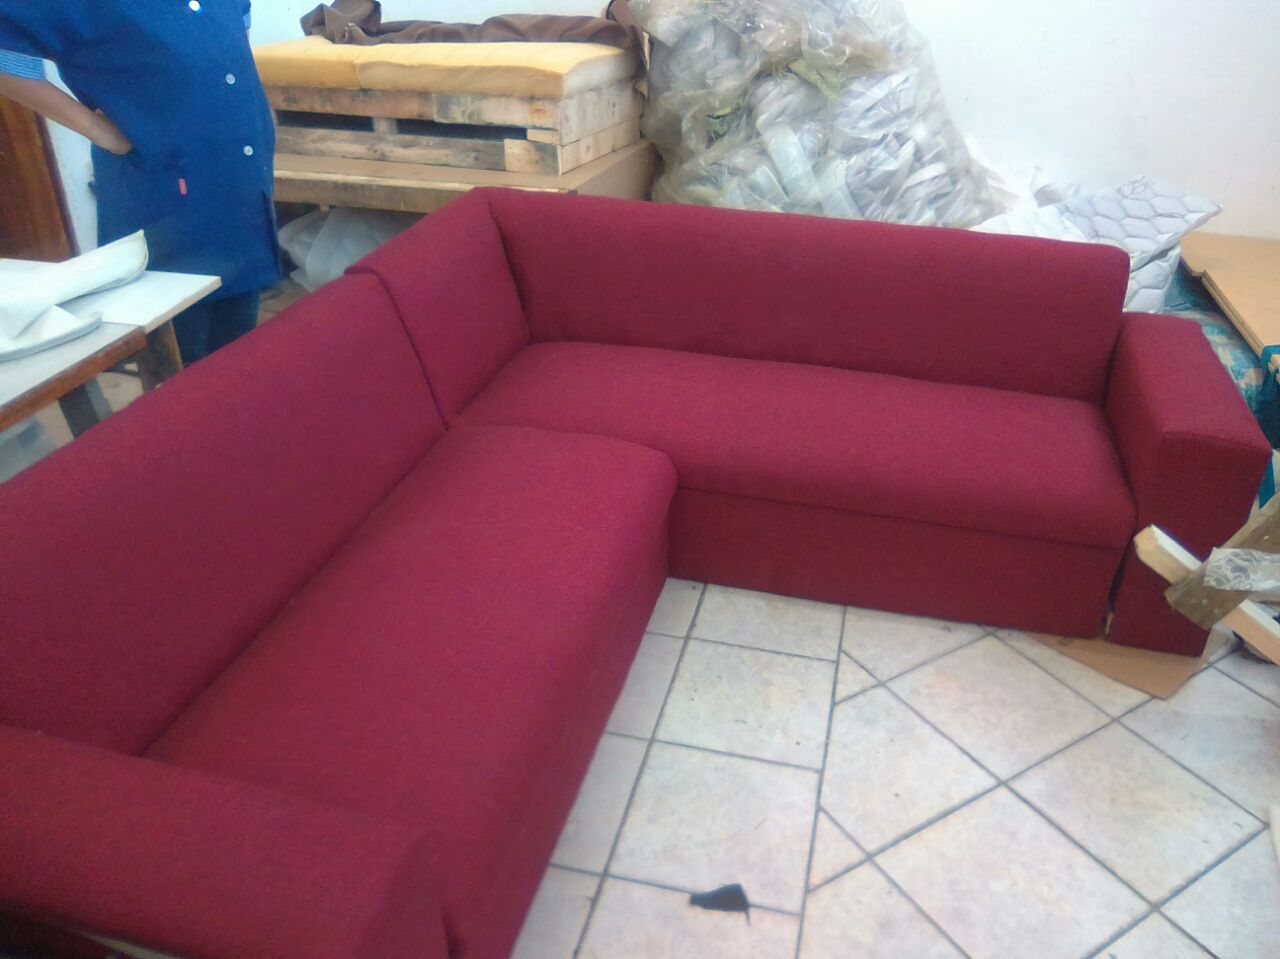 New lounge suite on special